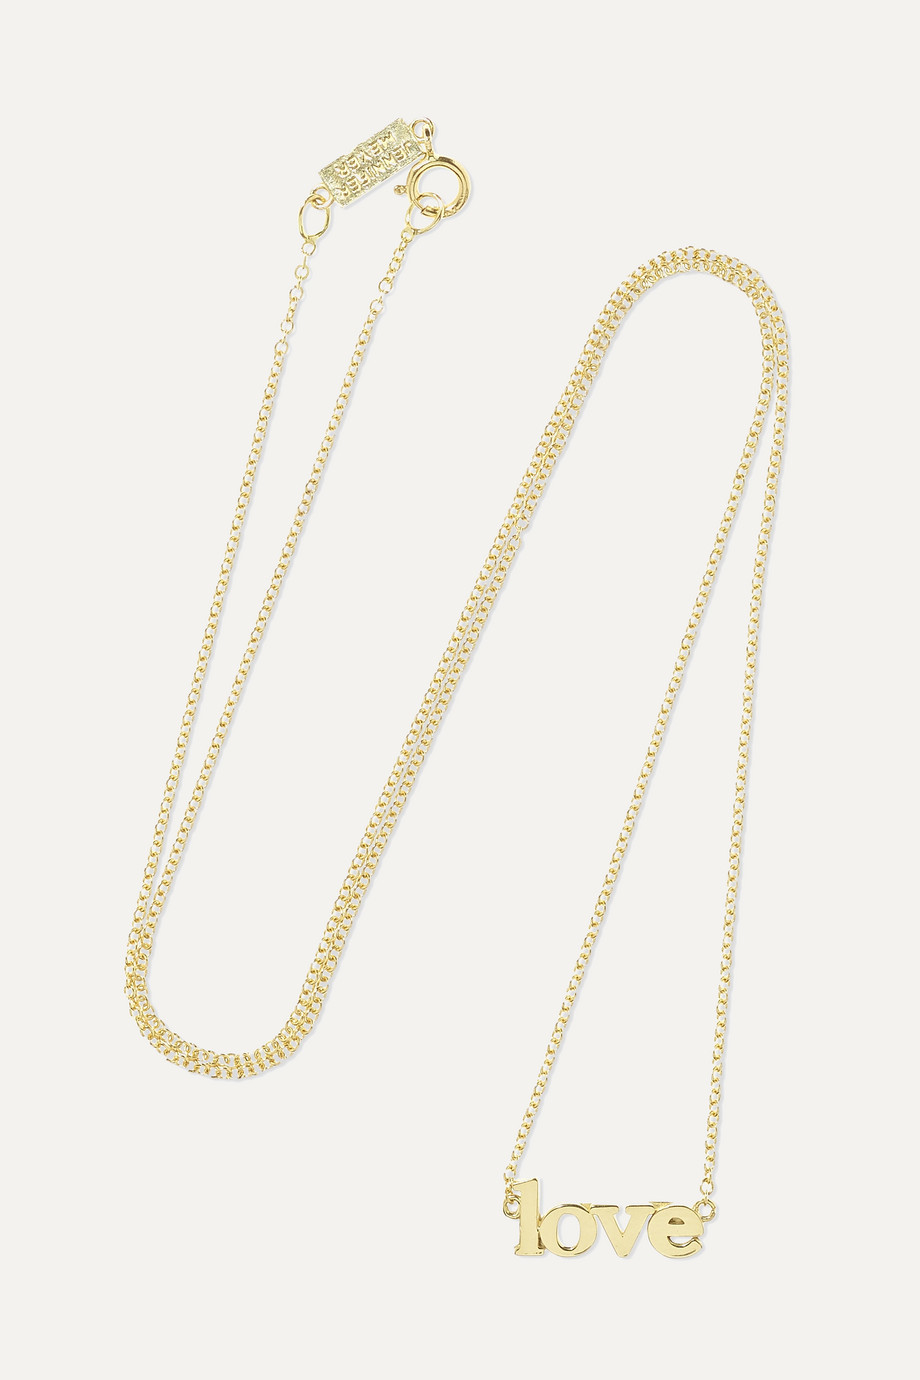 JENNIFER MEYER Love 18-karat gold necklace